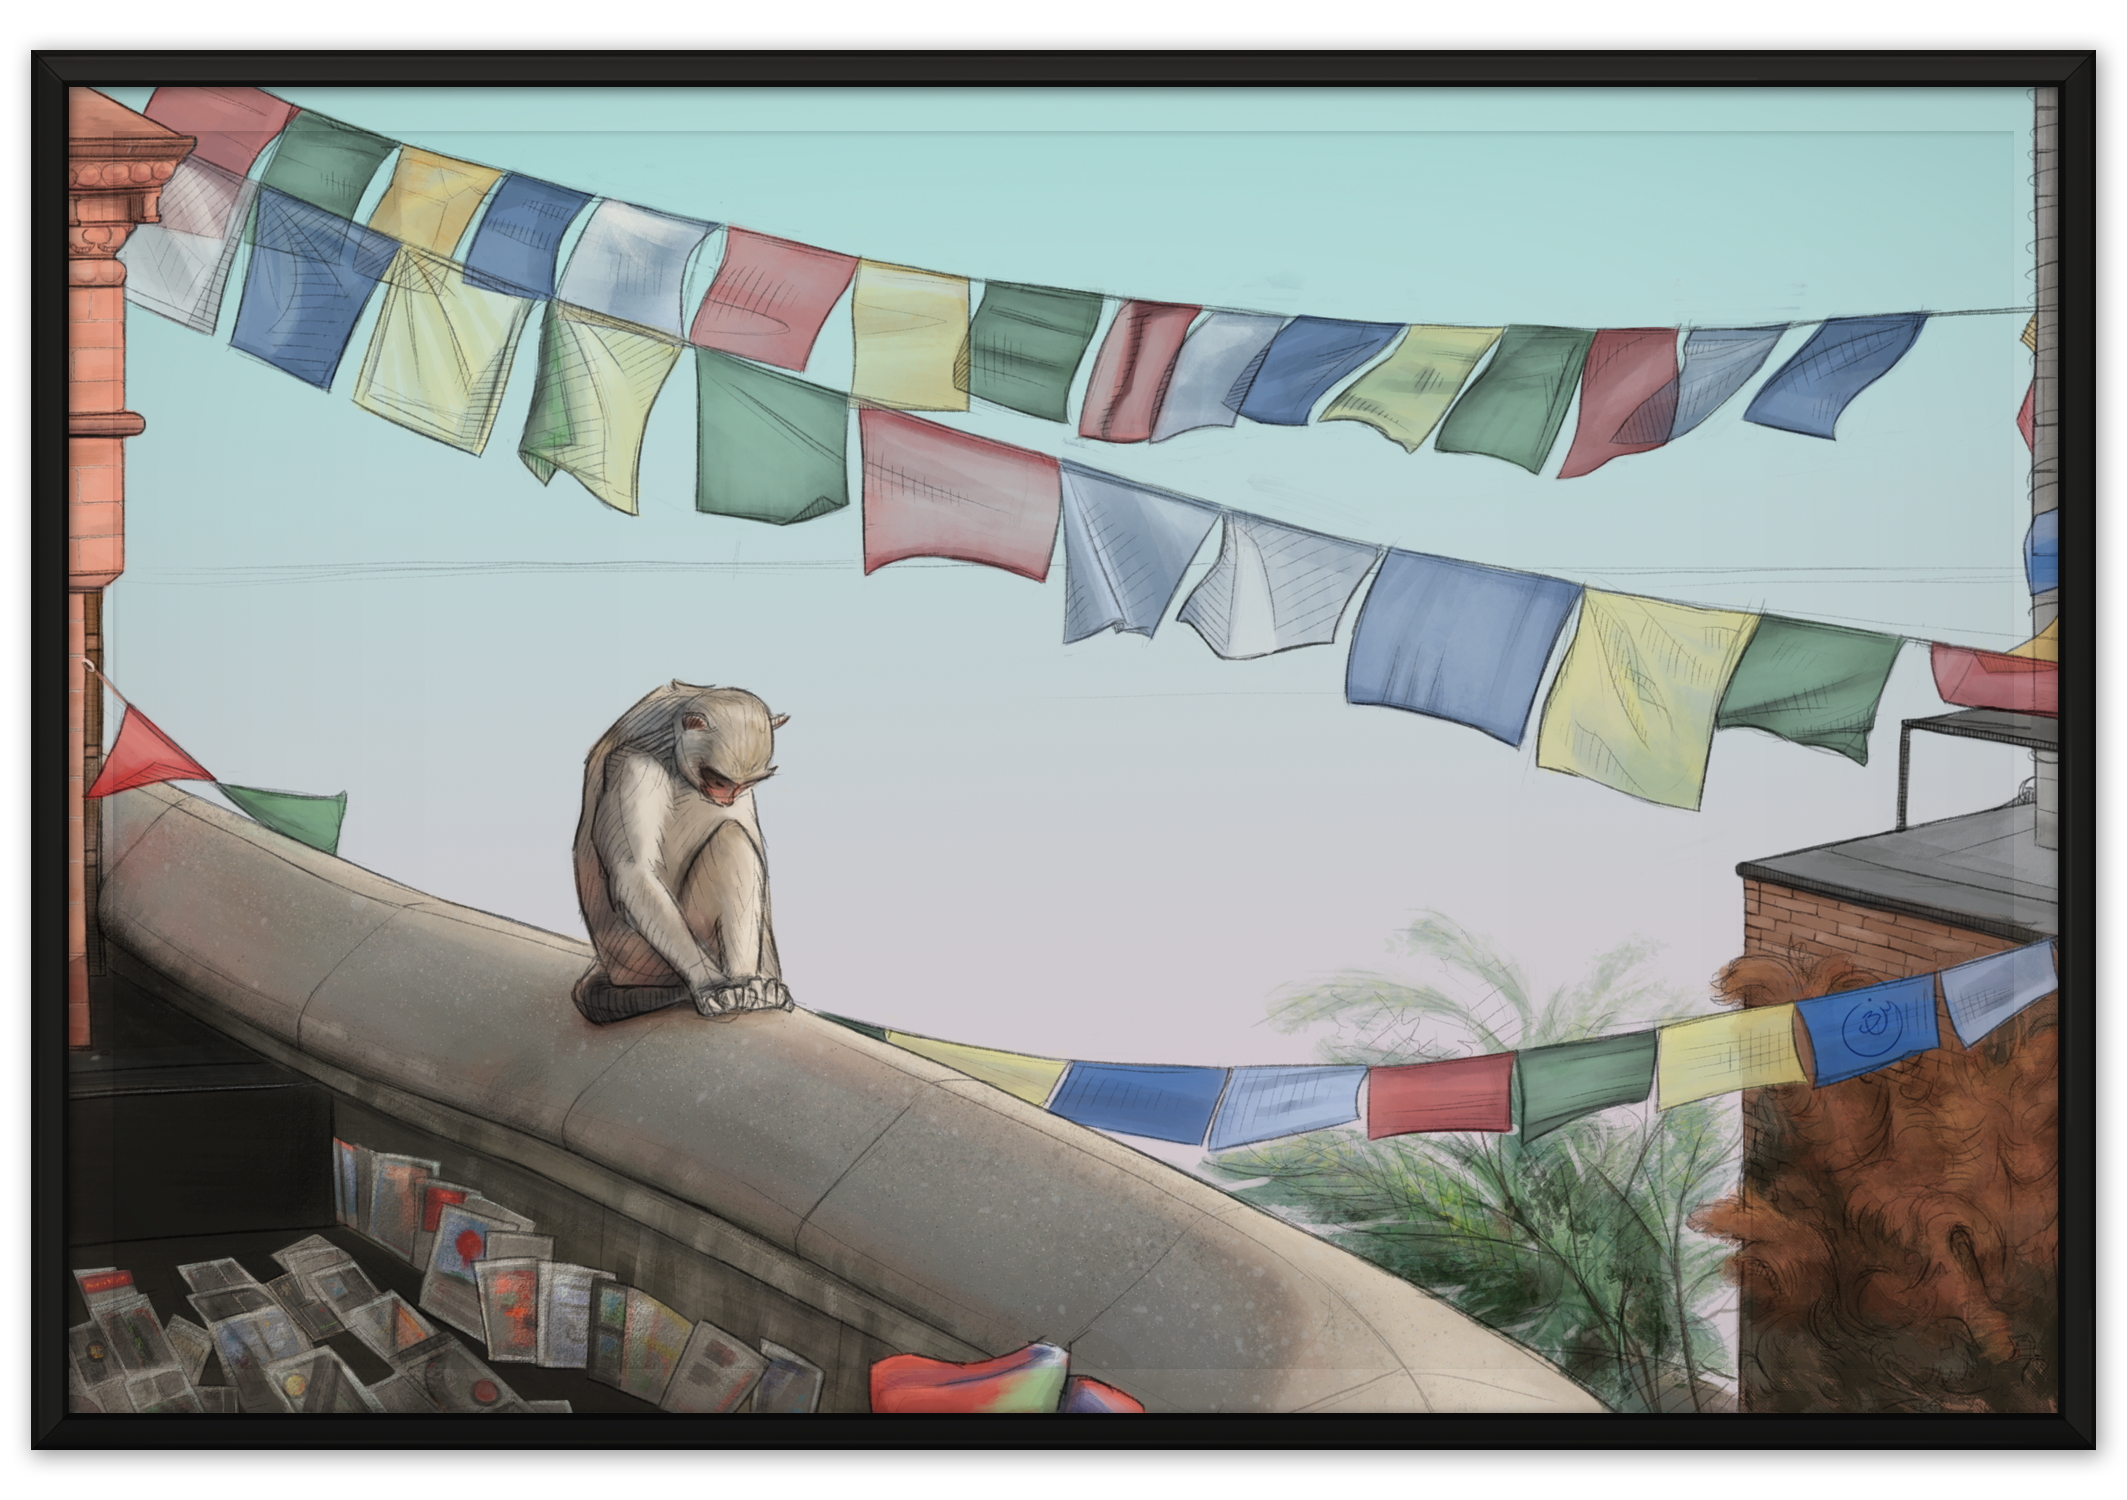 Prayer Flags (Digital, from reference)